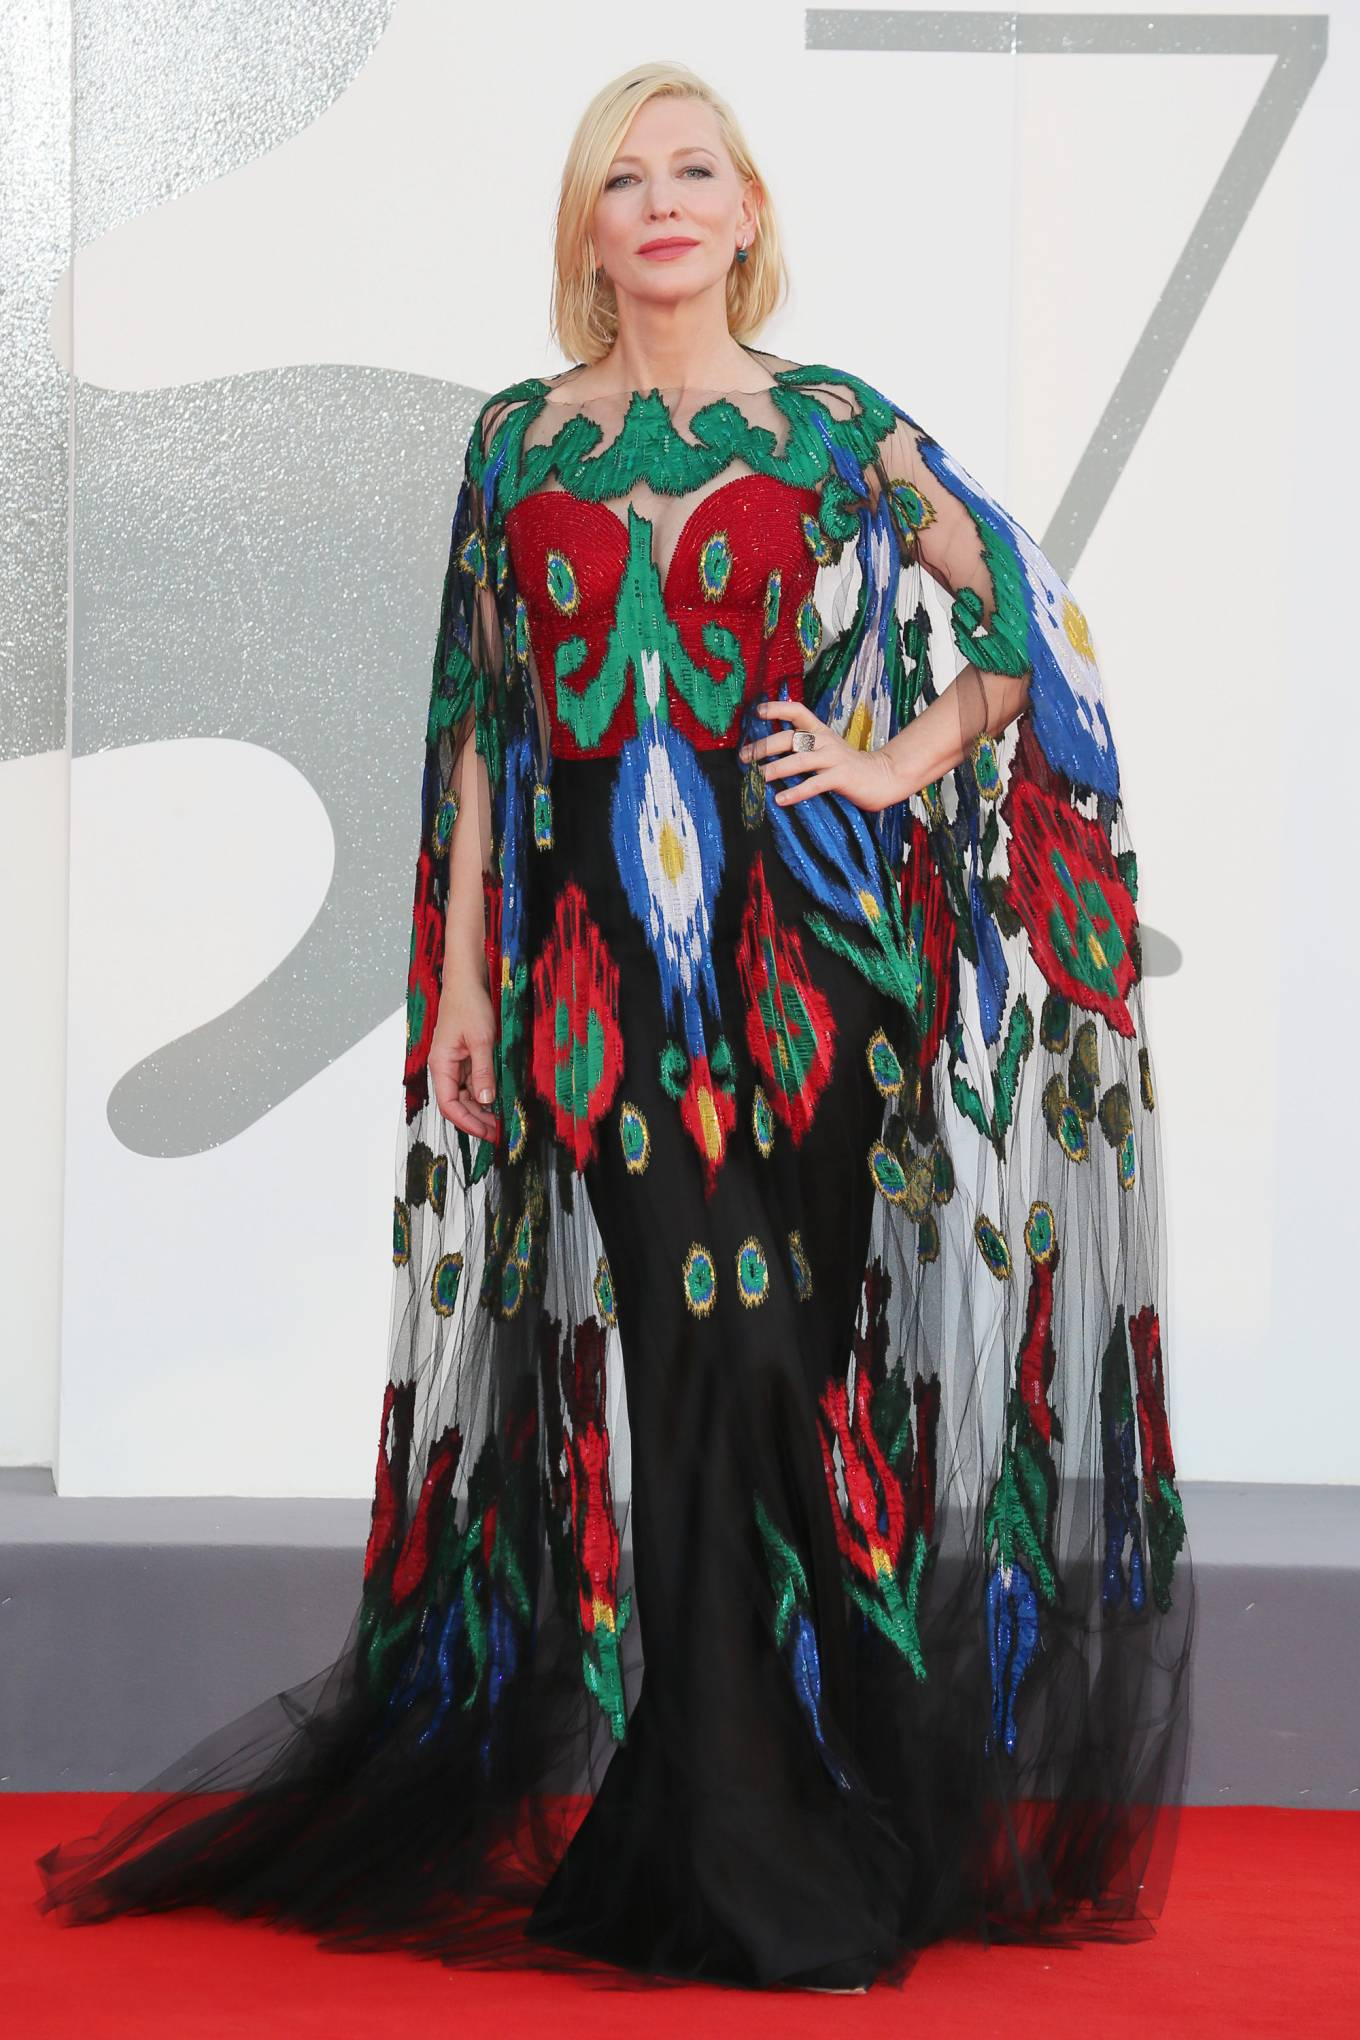 Cate Blanchett 2020 : Cate Blanchett – Closing Ceremony Red Carpet of 2020 Venice Film Festival in Venice-09